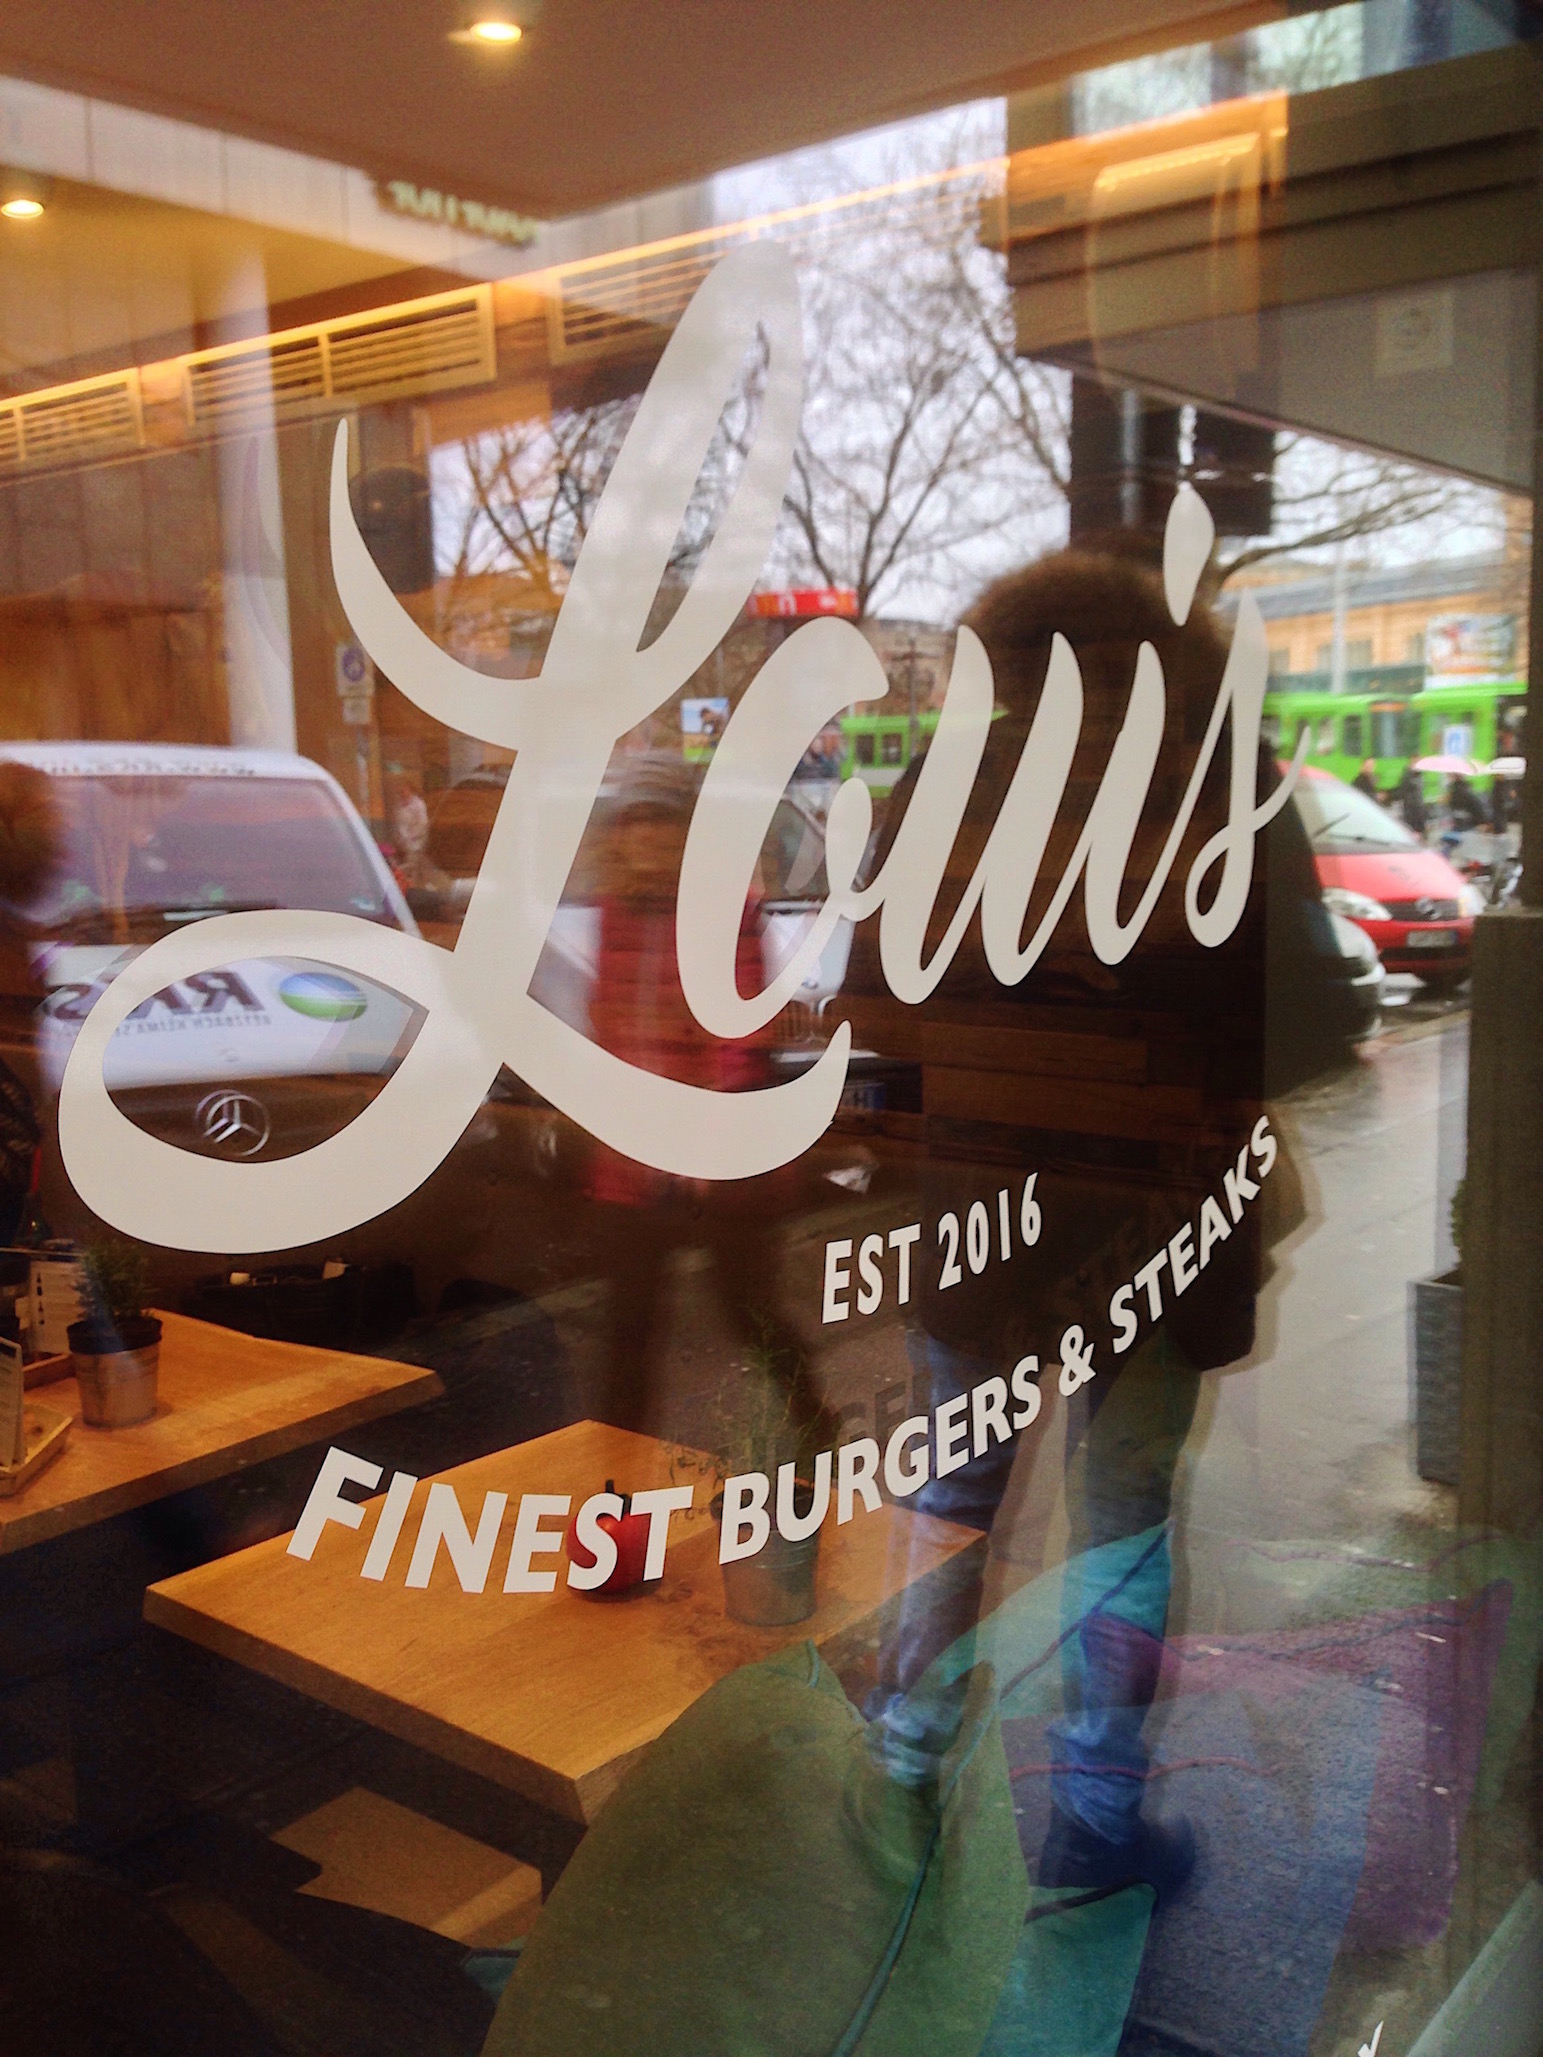 Louis Burger Steak Hannover